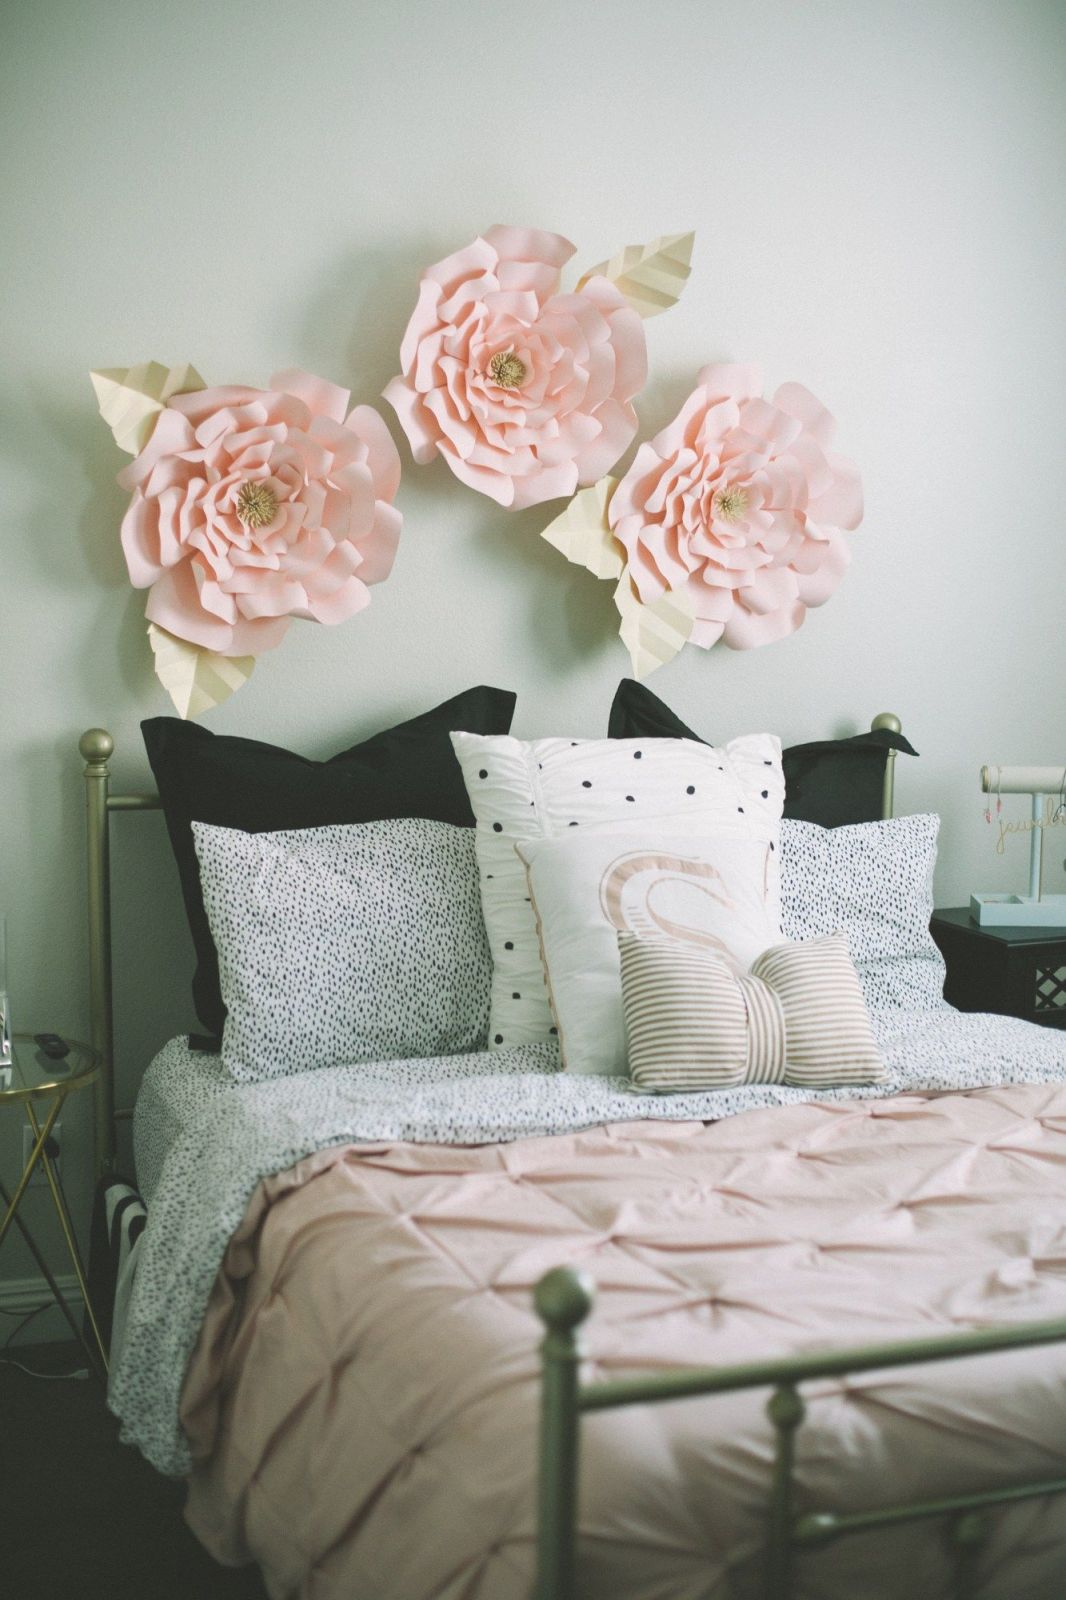 Pin On All About Family within Tween Girl Bedroom Decorating Ideas